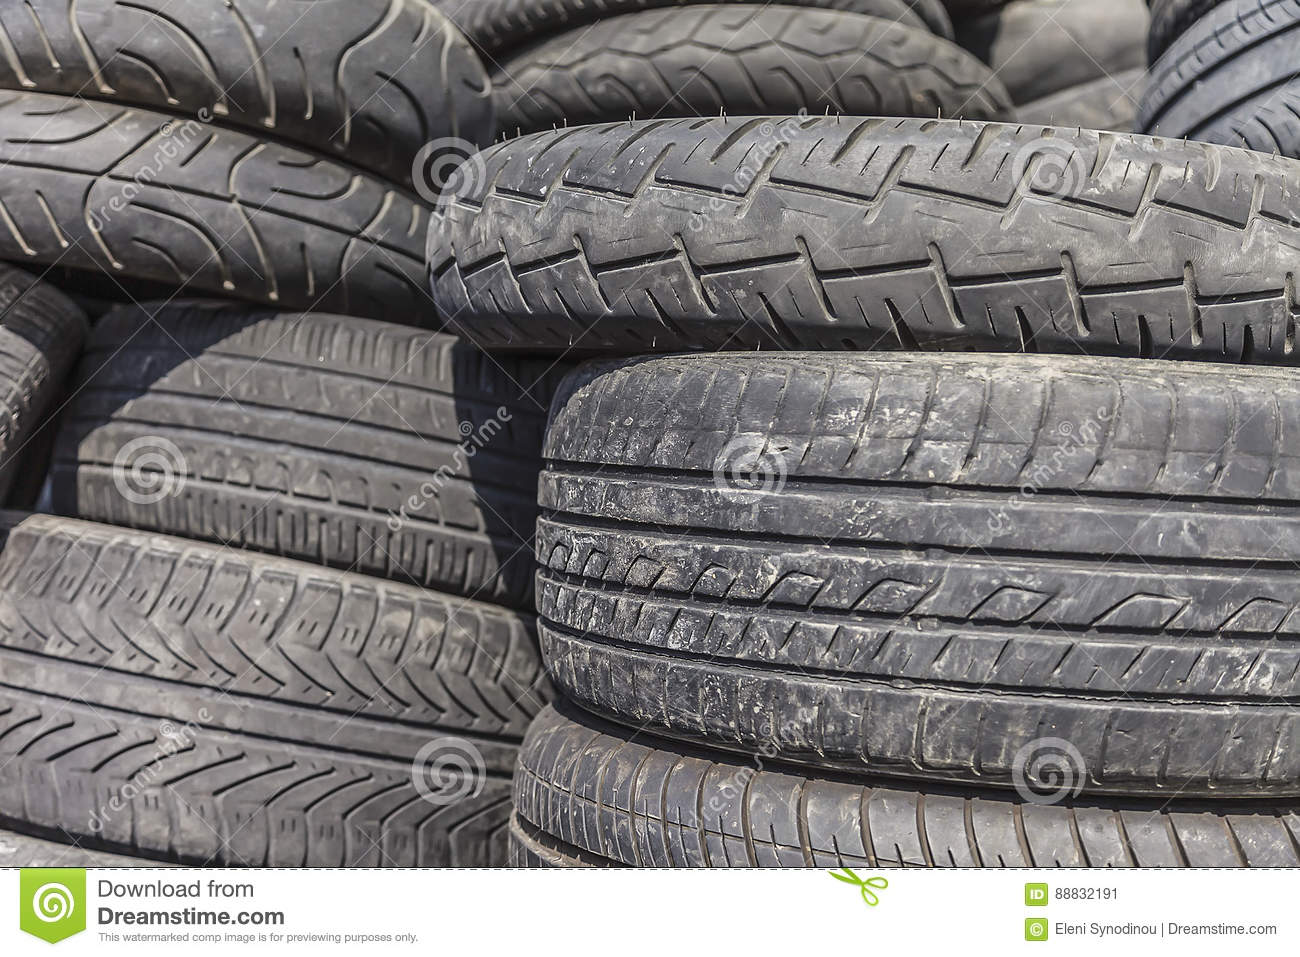 Heap of Tires stock image  Image of profile, disposal - 88832191